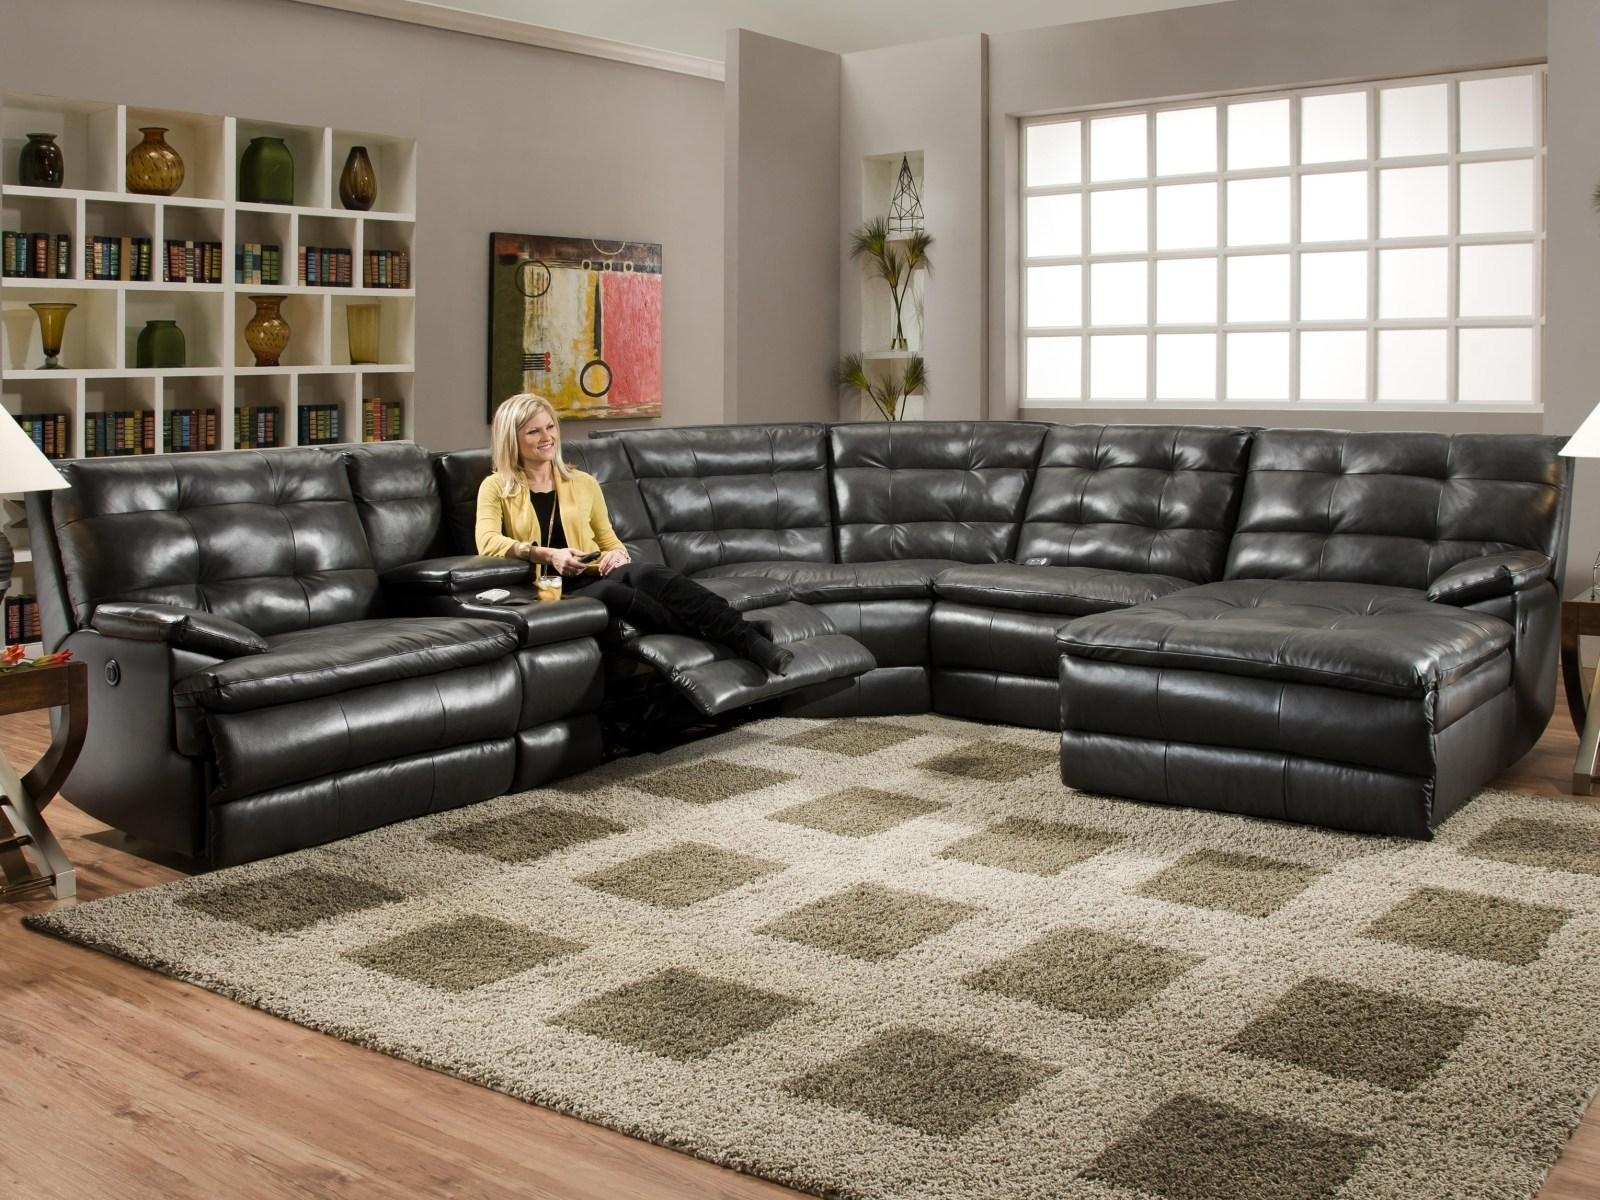 ▻ Sofa : 29 Good Looking Large Sectional Sofa With Chaise Lounge Pertaining To Large Sofa Sectionals (View 17 of 20)